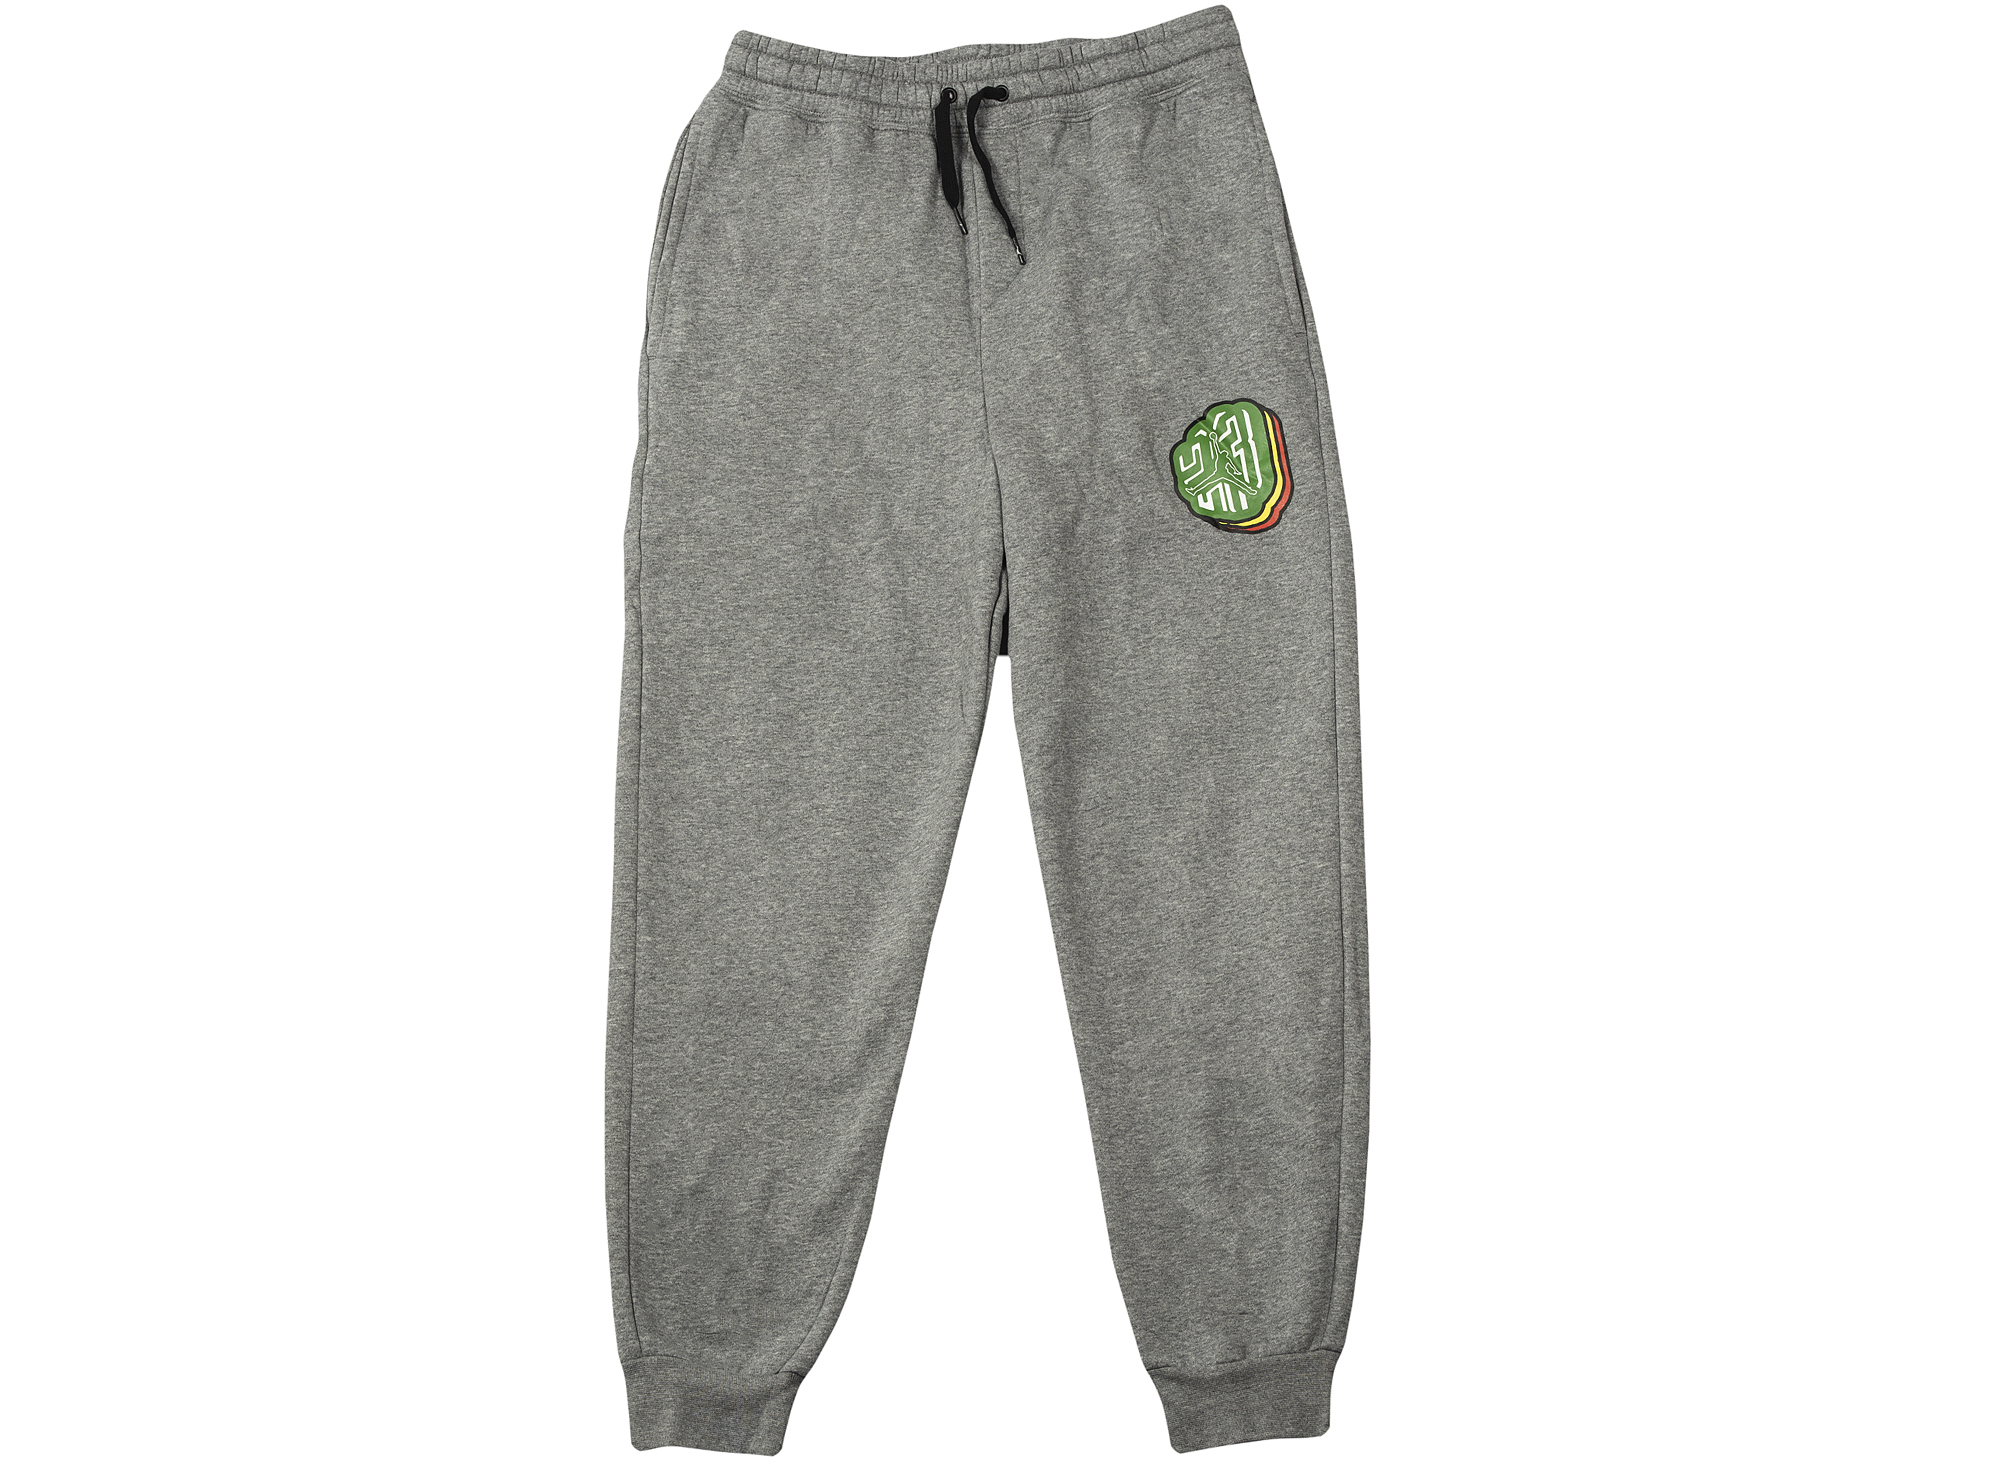 Jordan Jumpman Sticker Pants in Grey